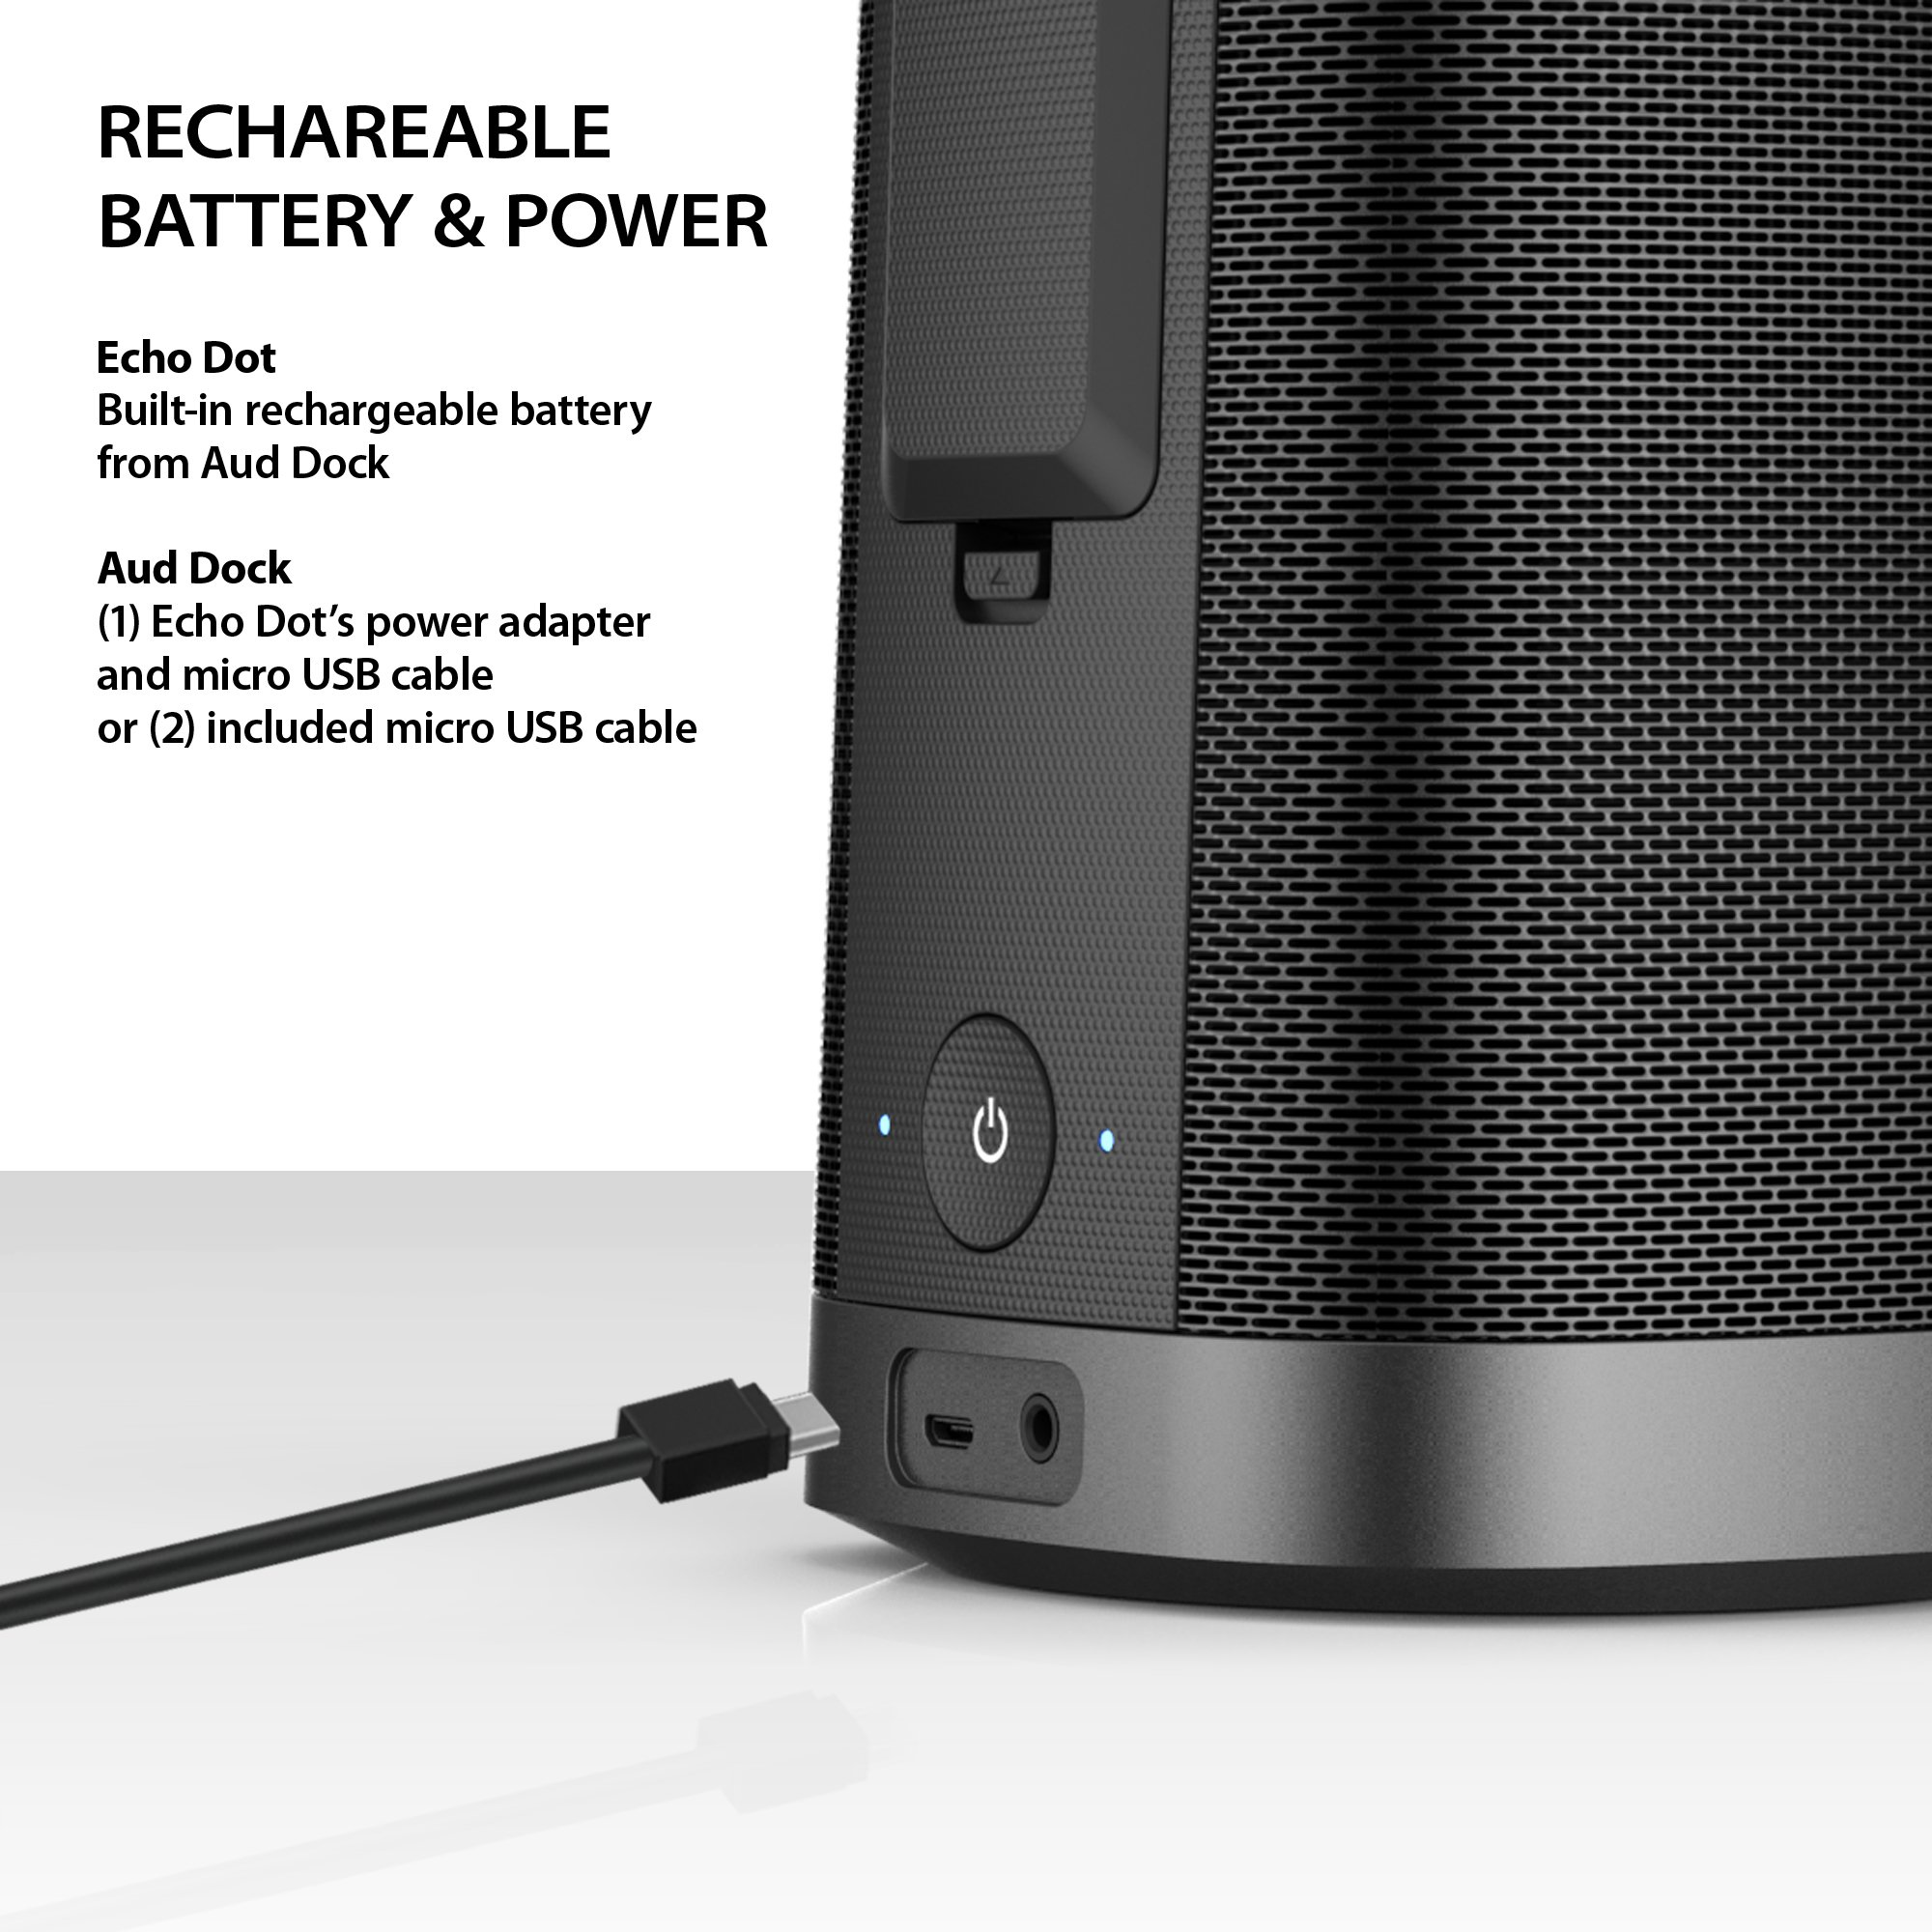 iLuv Aud Dock, Amazon Echo Dot Docking Audio Speaker with Powerful Dynamic Digital Sound, Portability, Plug & Play, Aux-in Port, Rechargeable Battery, and Micro USB Cable (Black) by iLuv (Image #7)